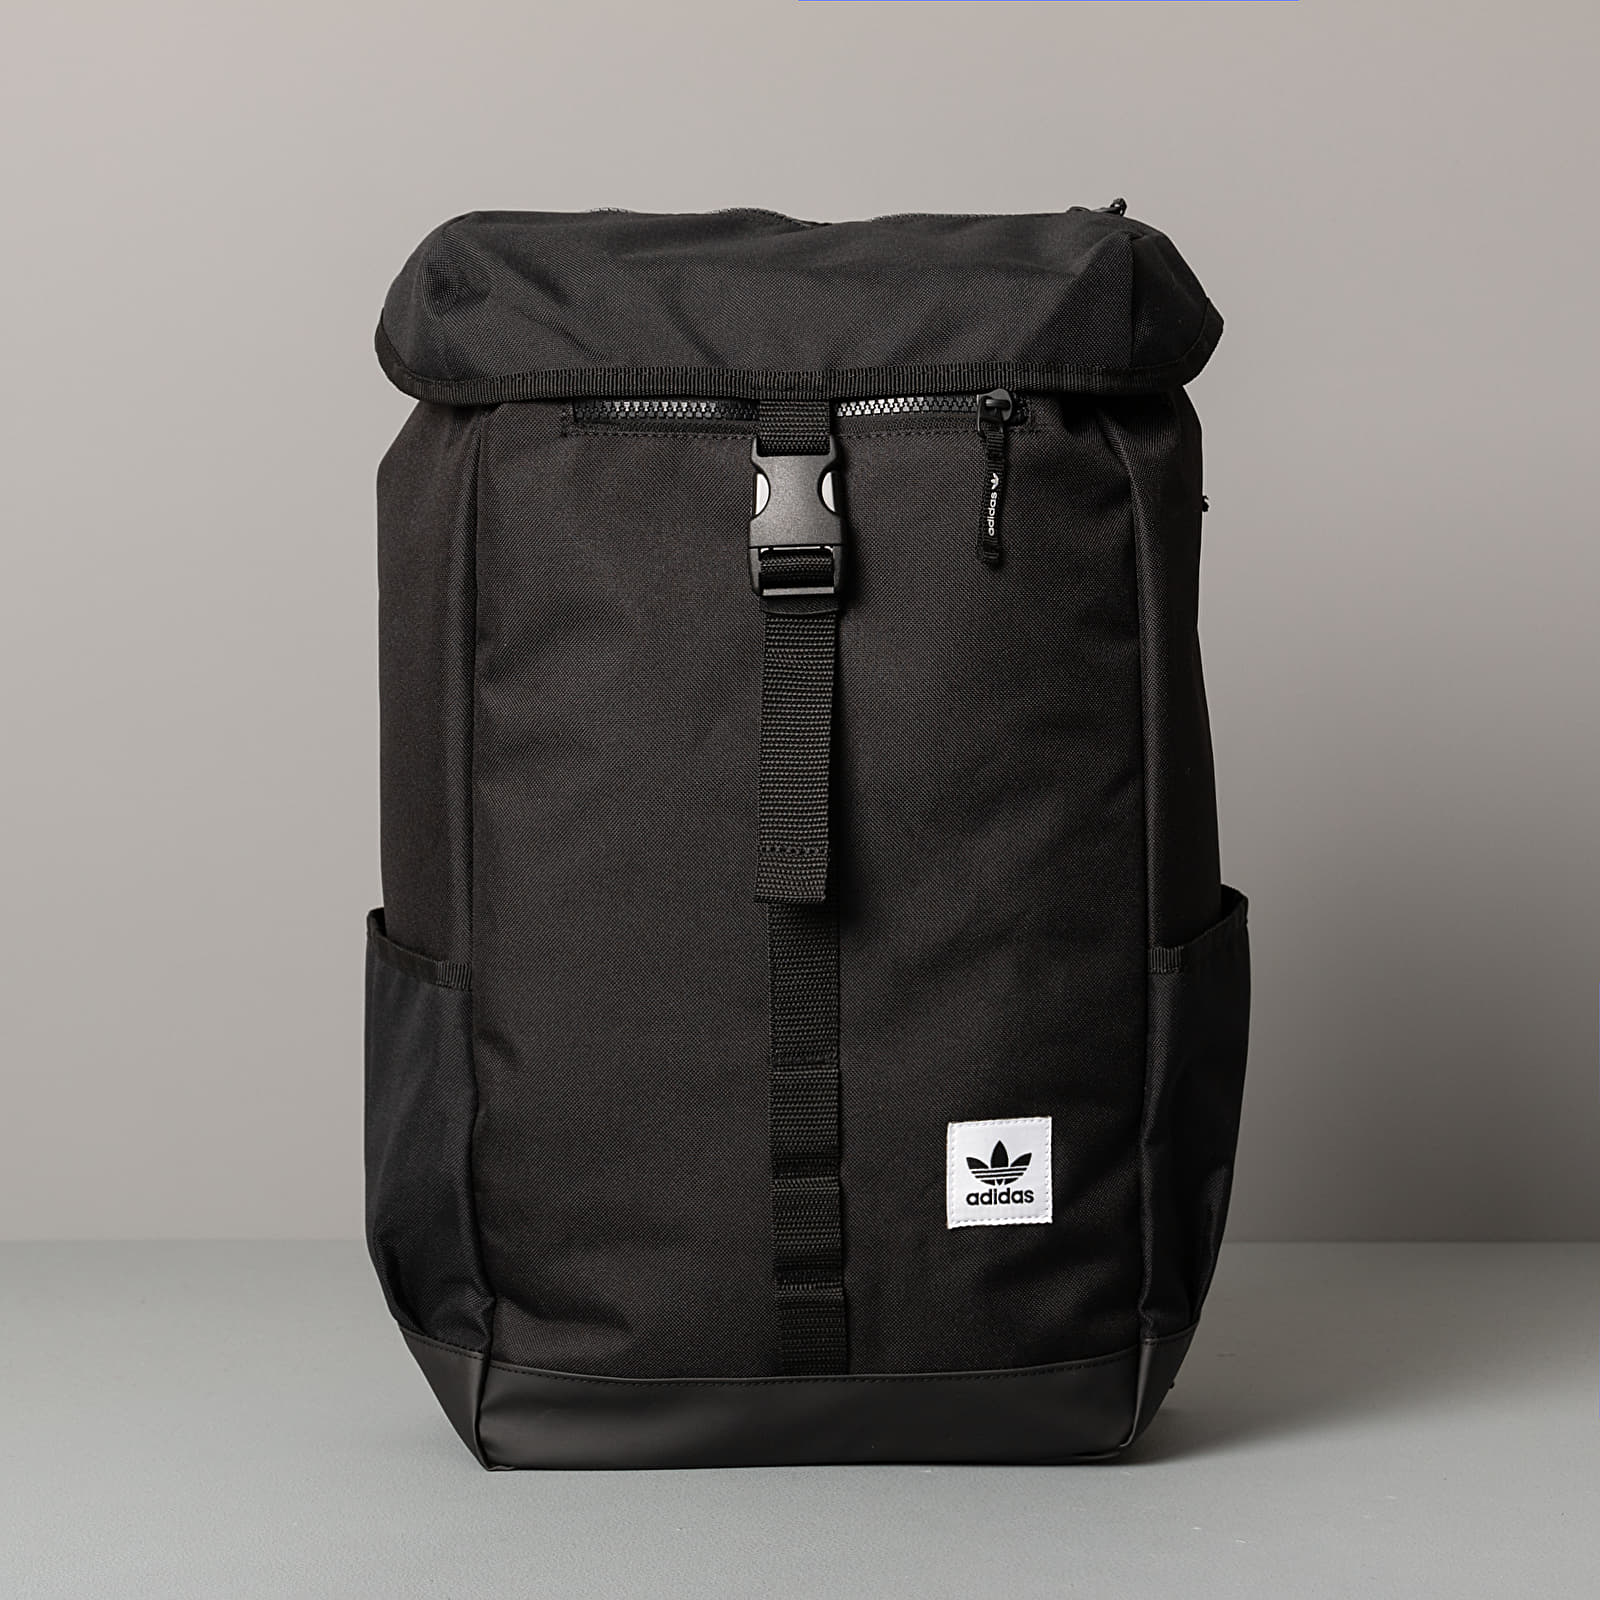 Backpacks adidas Premium Toploader Backpack Black